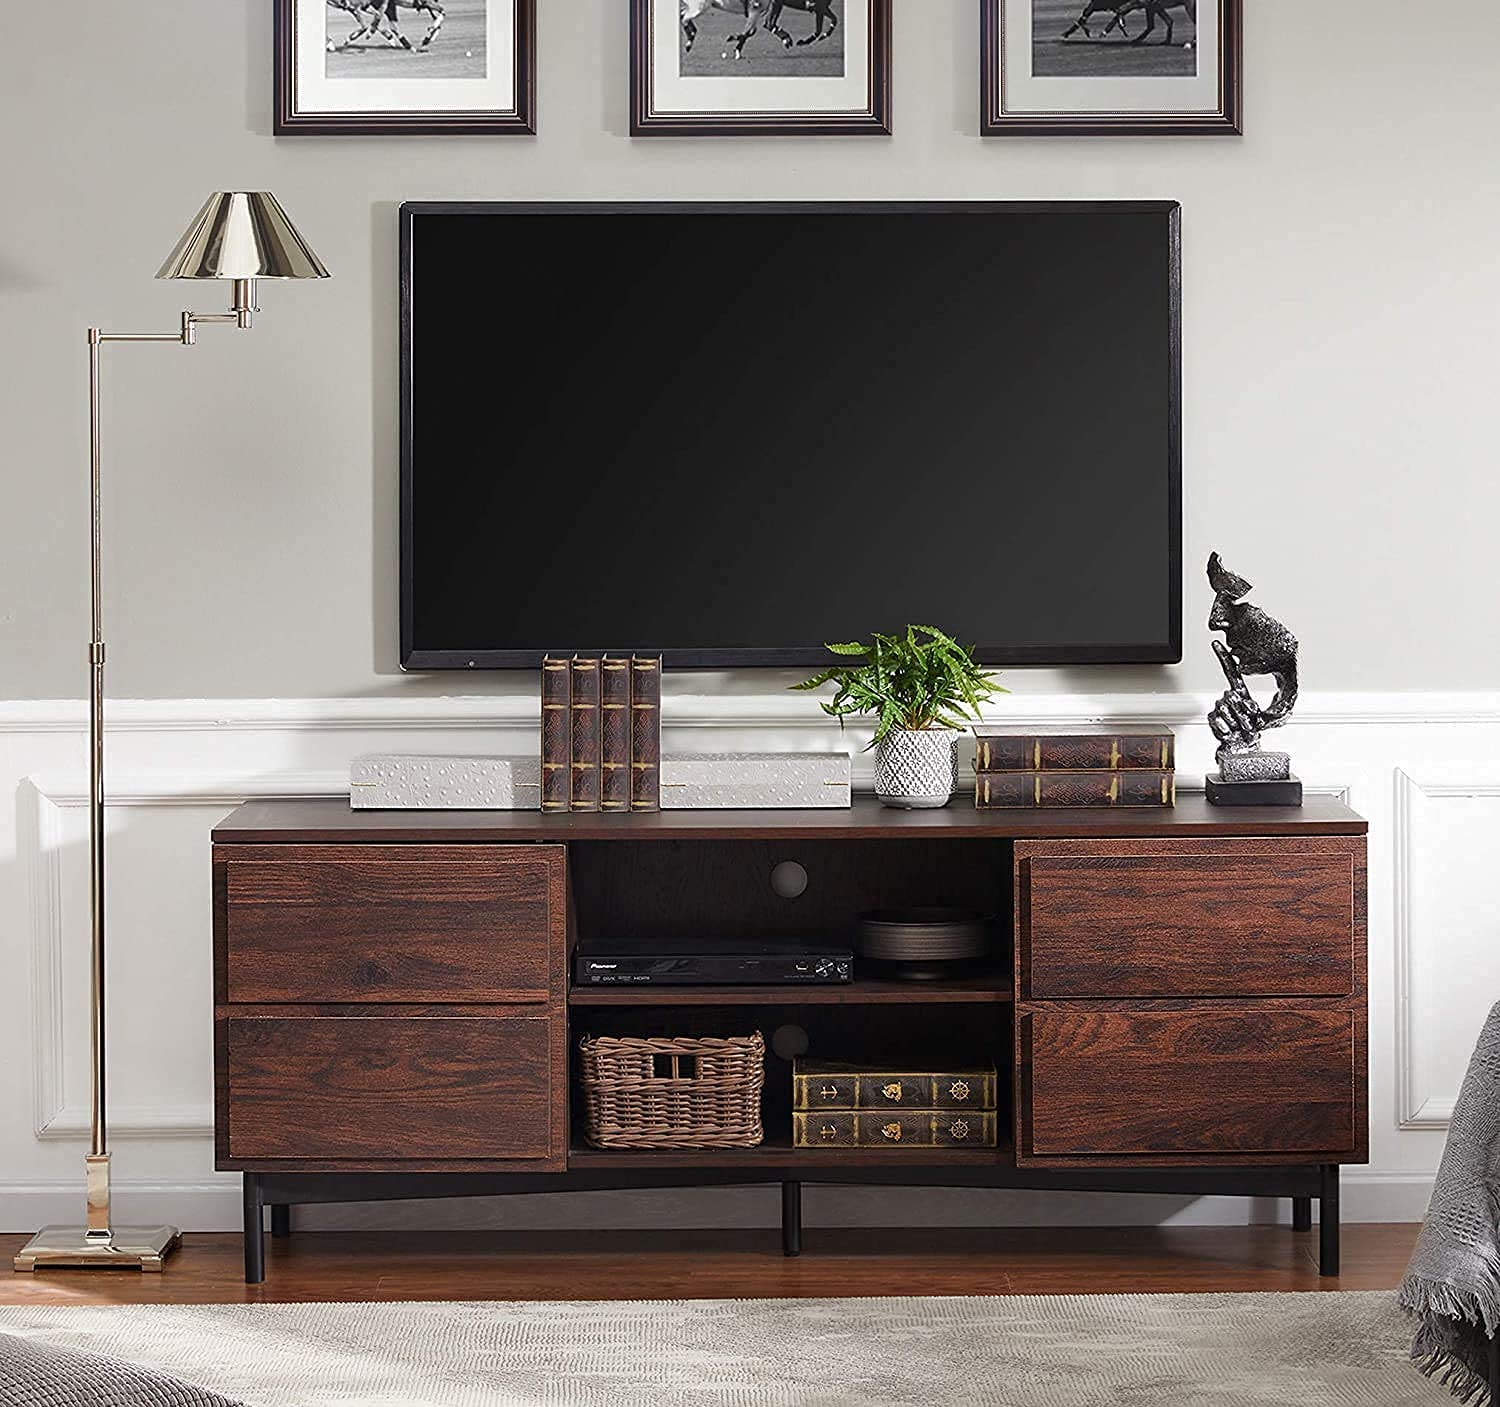 WAMPAT Wood Mid Century Modern TV Stand, Rustic Walnut Television Stands Media Entertainment Center with Storage for TVs up to 65''